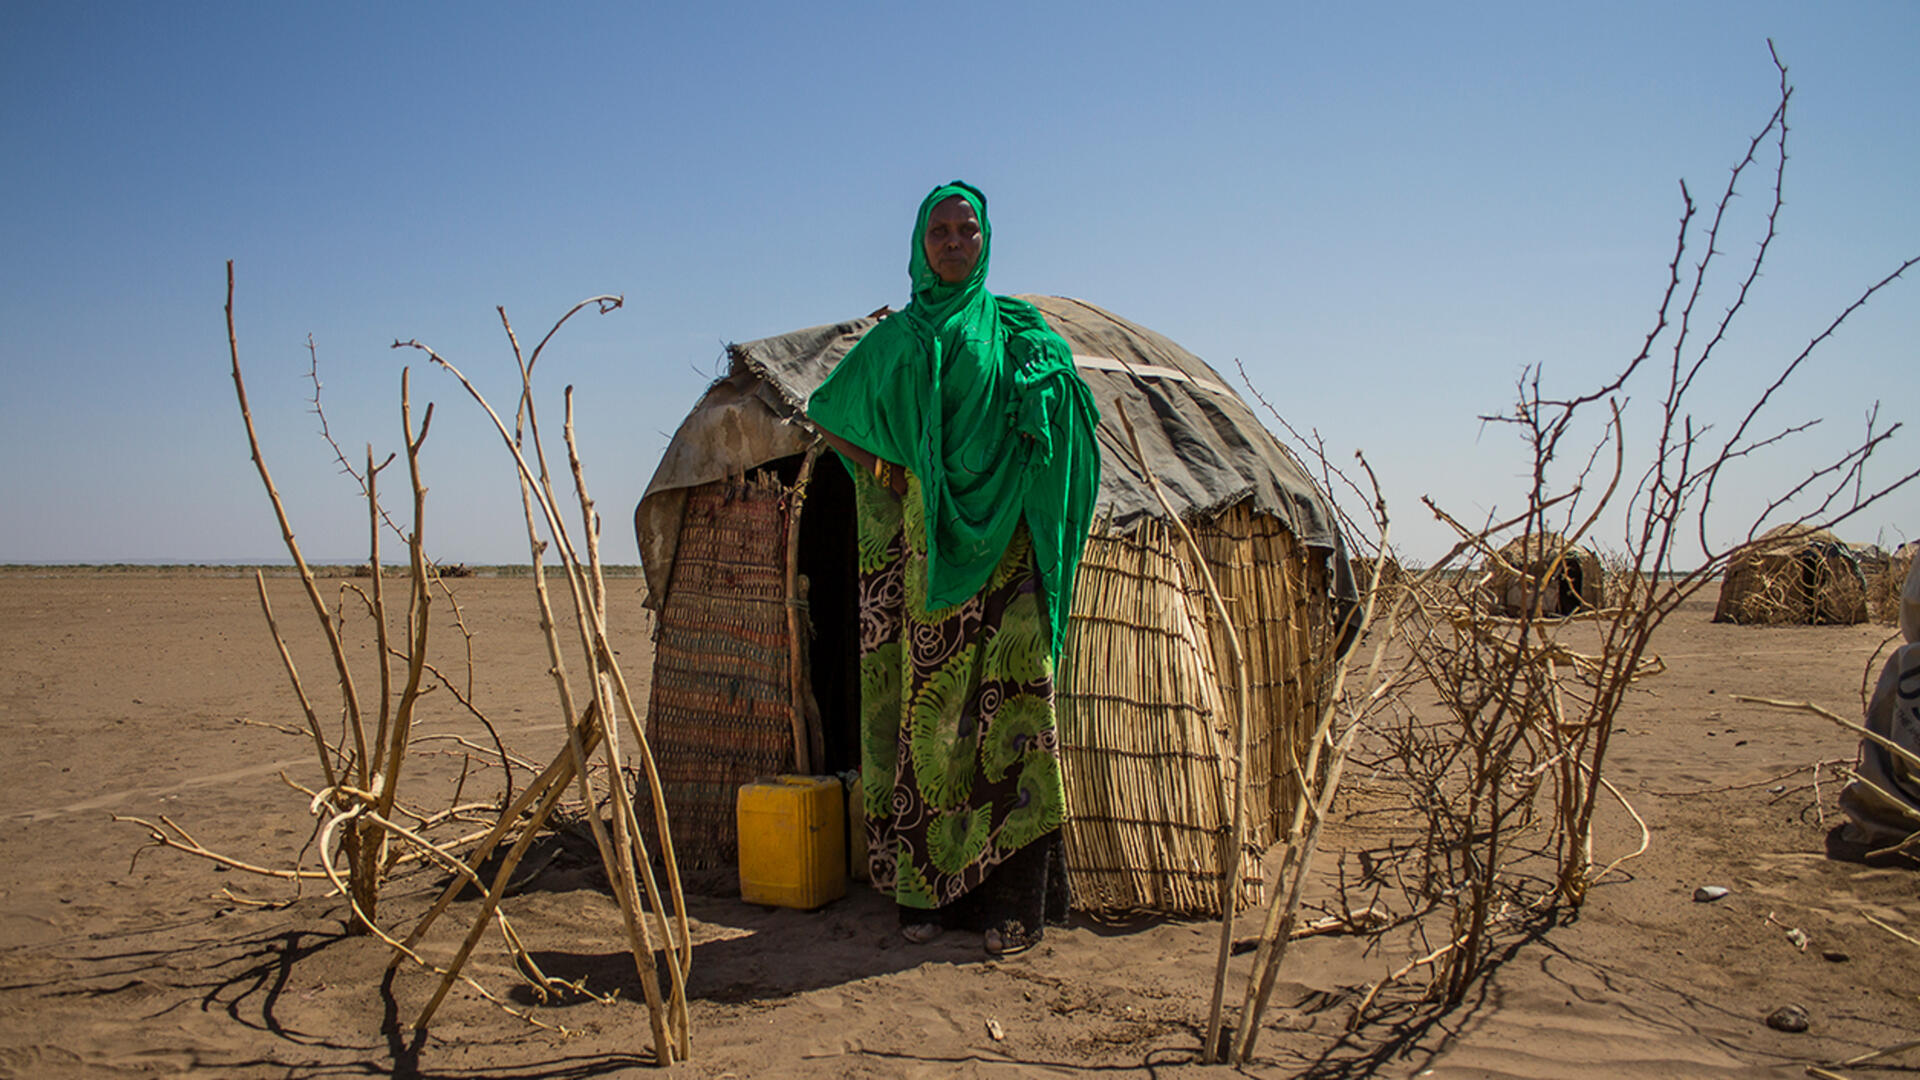 Sada Mohammed, stands in front of her temporary shelter near a remote village in the drought-affected Somali region of Ethiopia.